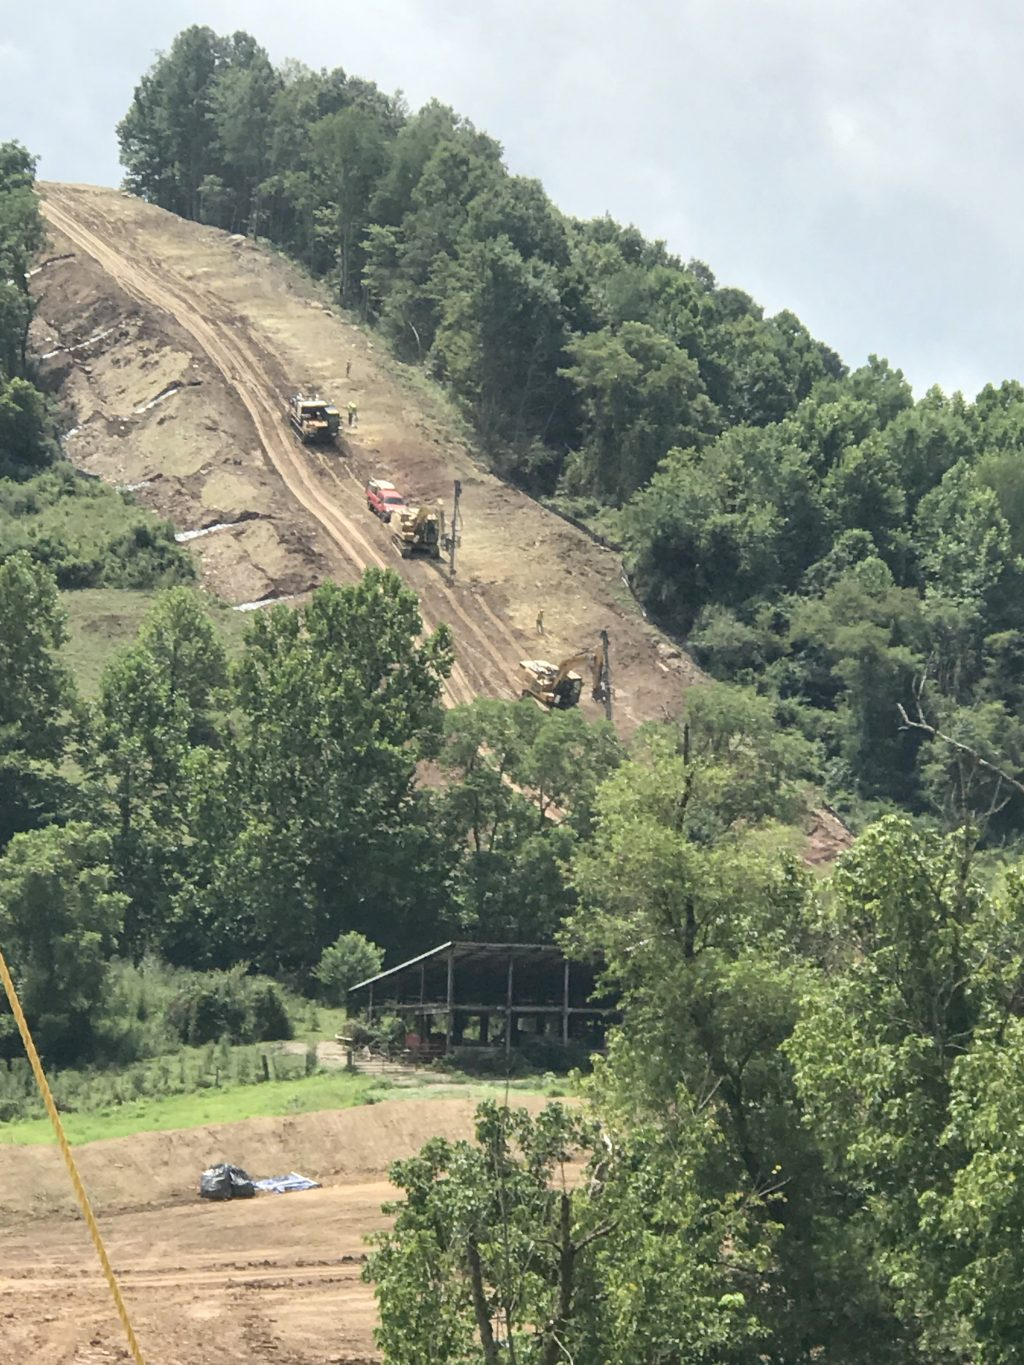 https://ohvec.org/blog/wp-content/uploads/2018/08/pipelin-reedy-5774.jpg